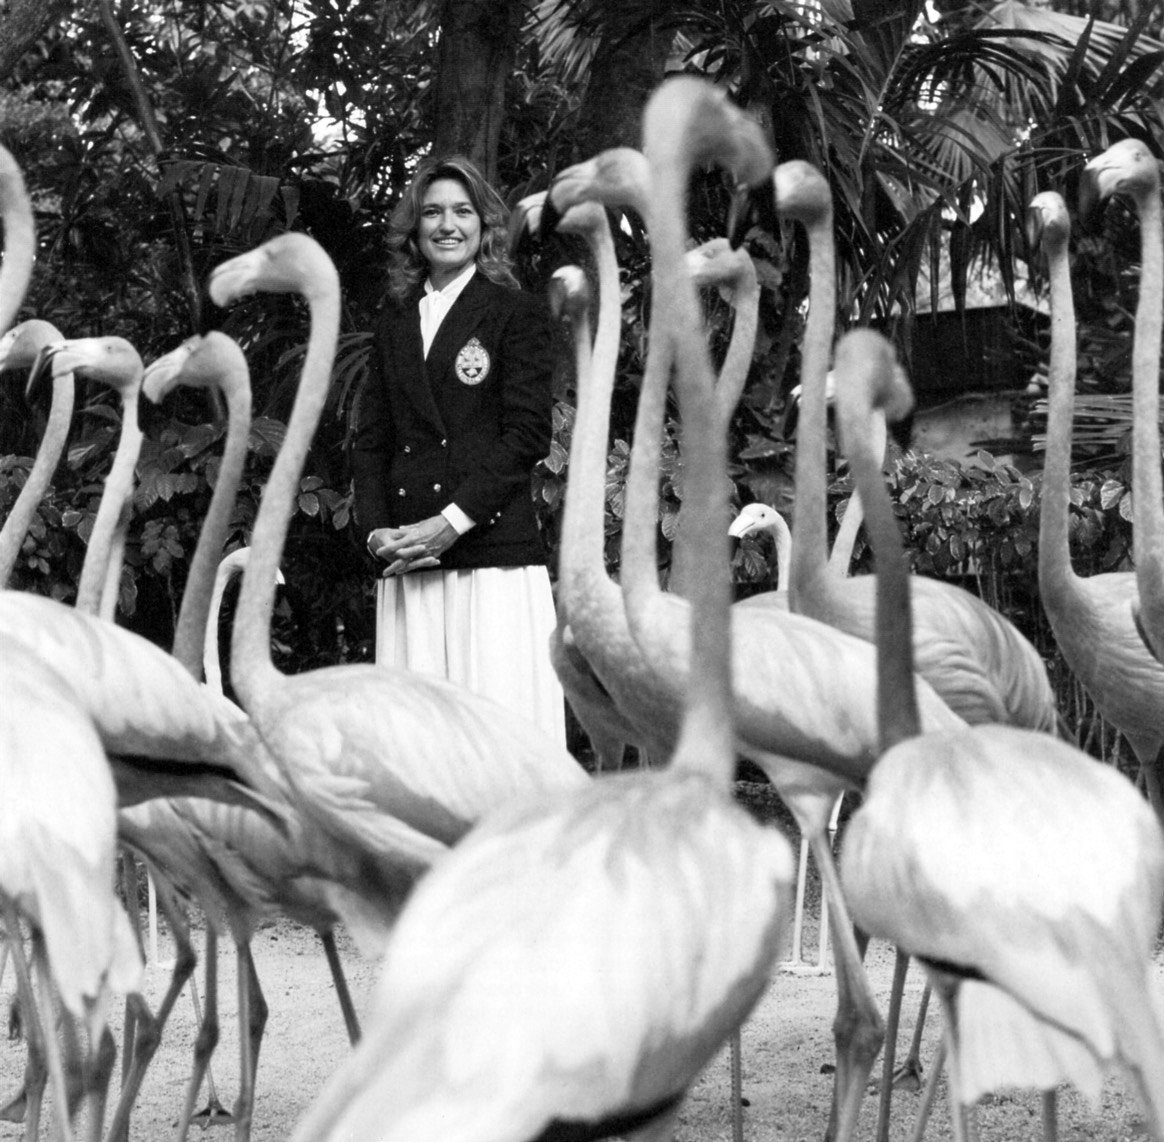 Lynn Holowesko - President of the Bahamas National Trust. She oversees the well-being of the National Bird of the Bahamas, the flamingo - Nassau